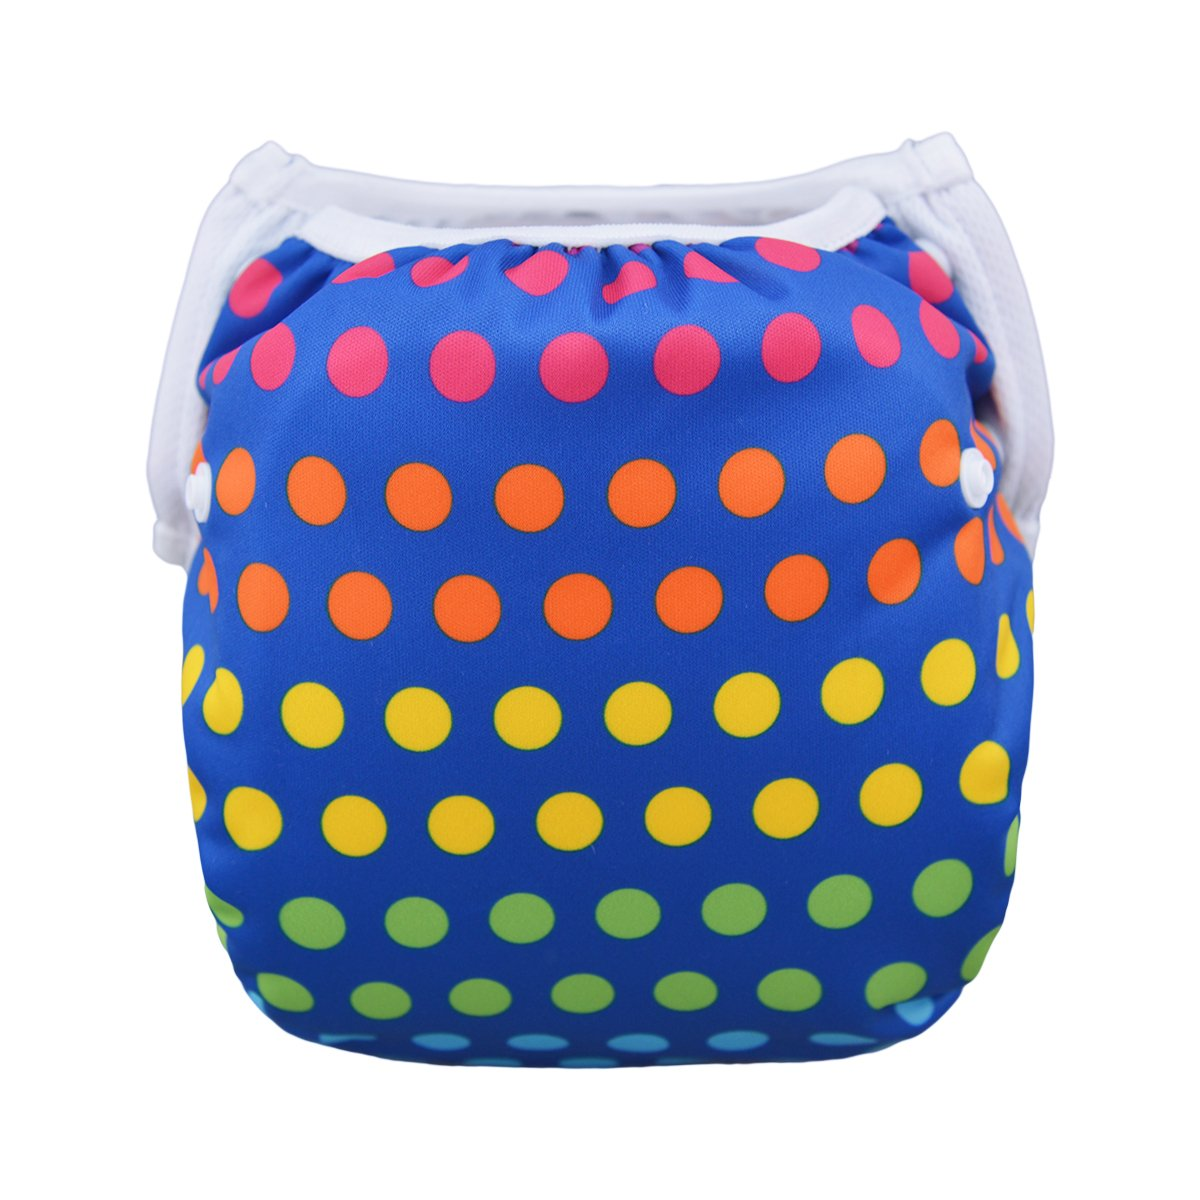 ALVABABY Swim Diapers, Reuseable Washable Baby Swimming Diaper For Boys and Girls,Diapers For Swimming